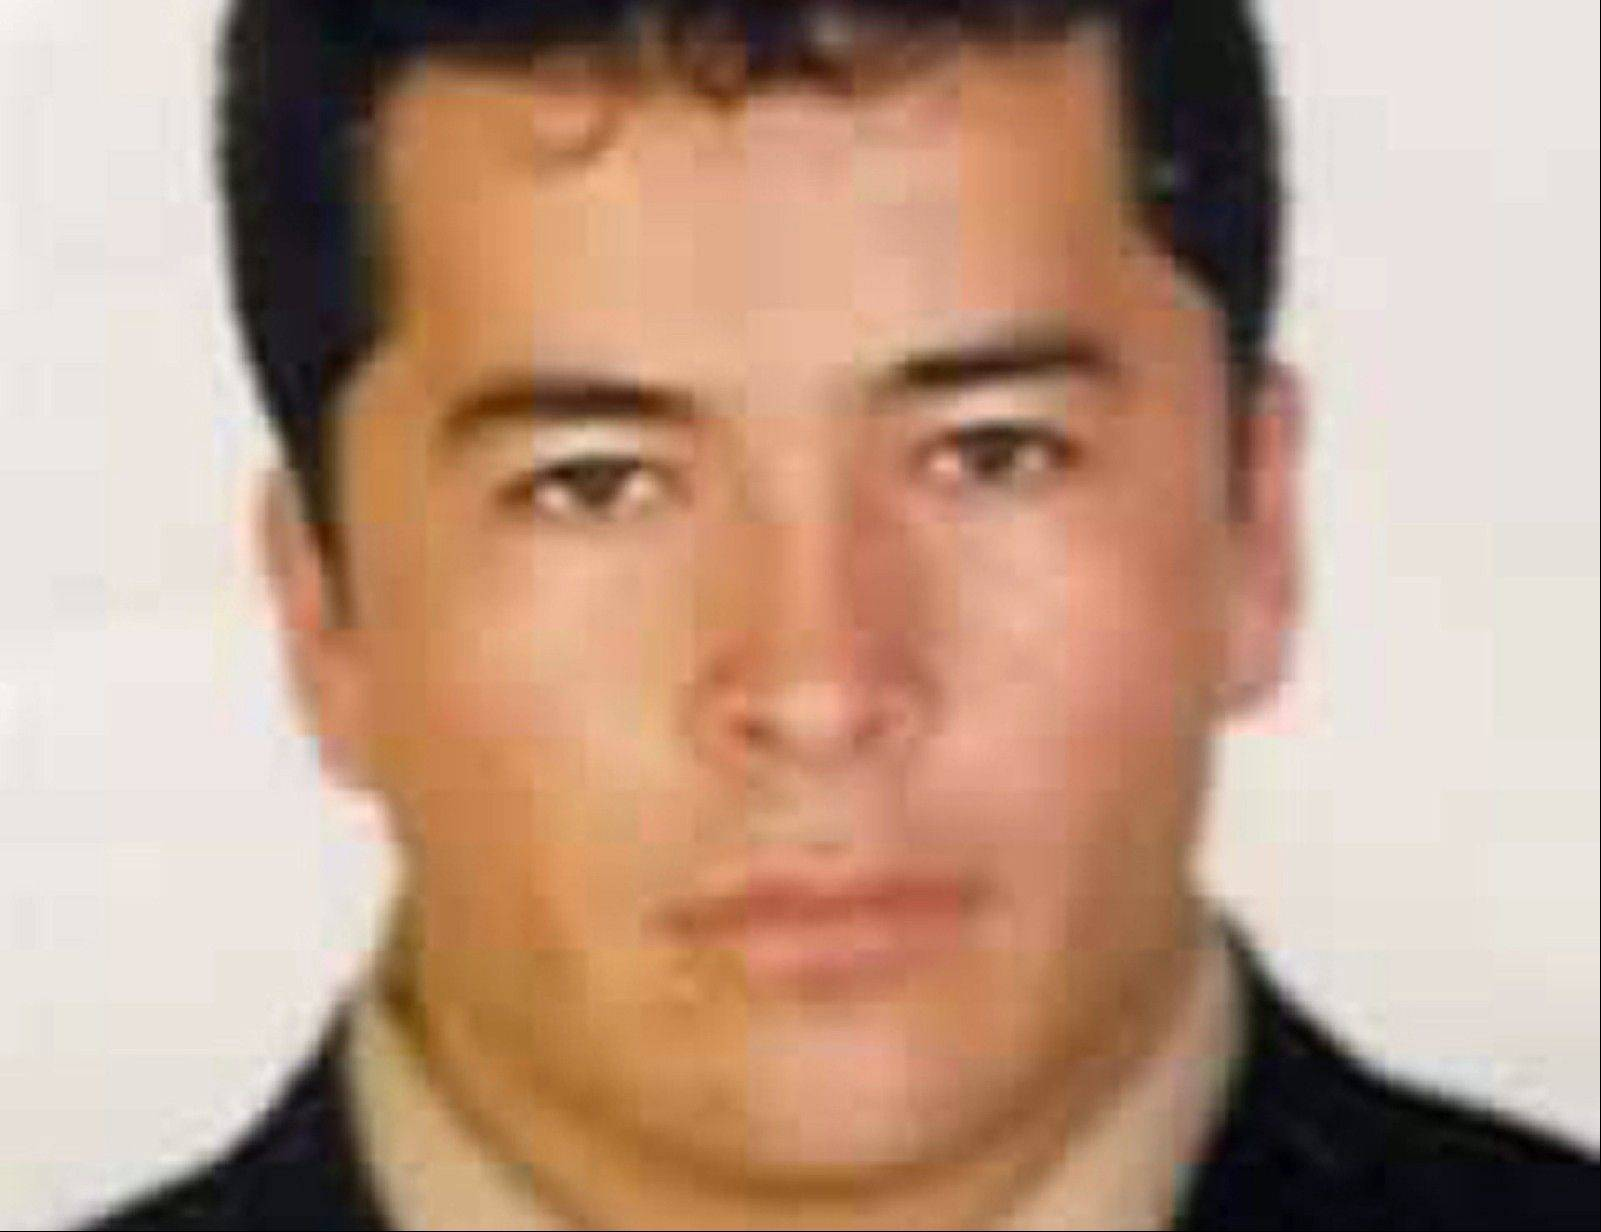 The Mexican navy says alleged Zeta drug cartel leader and founder Heriberto Lazcano has apparently been killed in a firefight with marines in the Mexican northern border state of Coahuila.